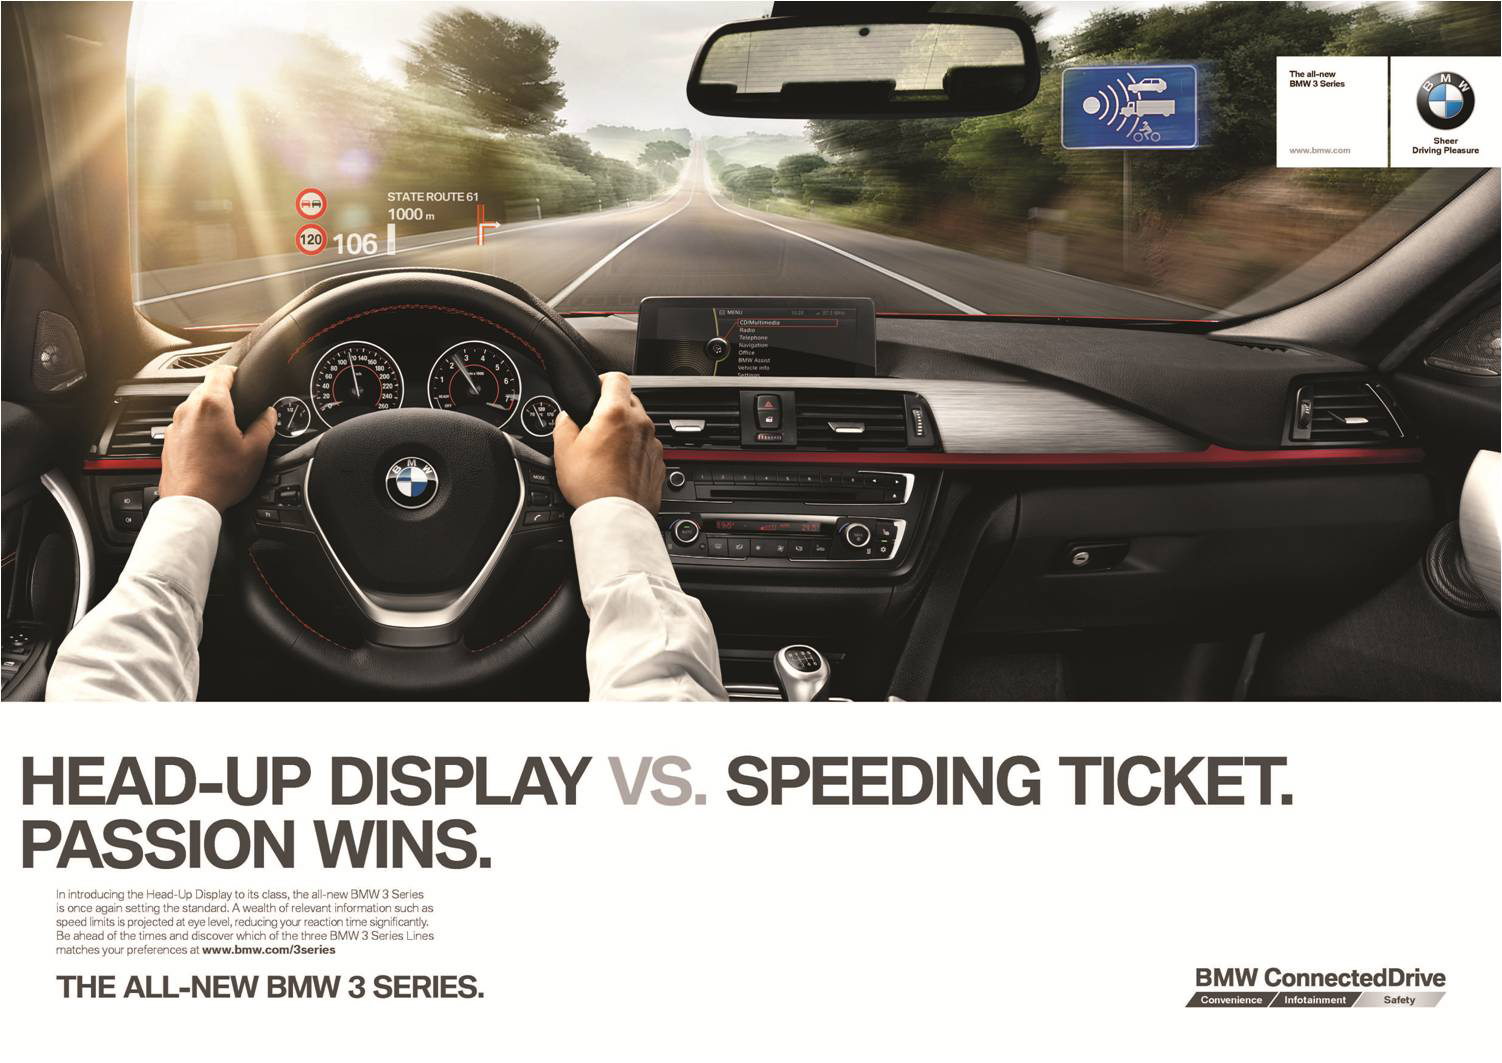 2012 Bmw 328i For Sale >> BMW's Print Marketing for New 3-Series | Todd Bianco's ...